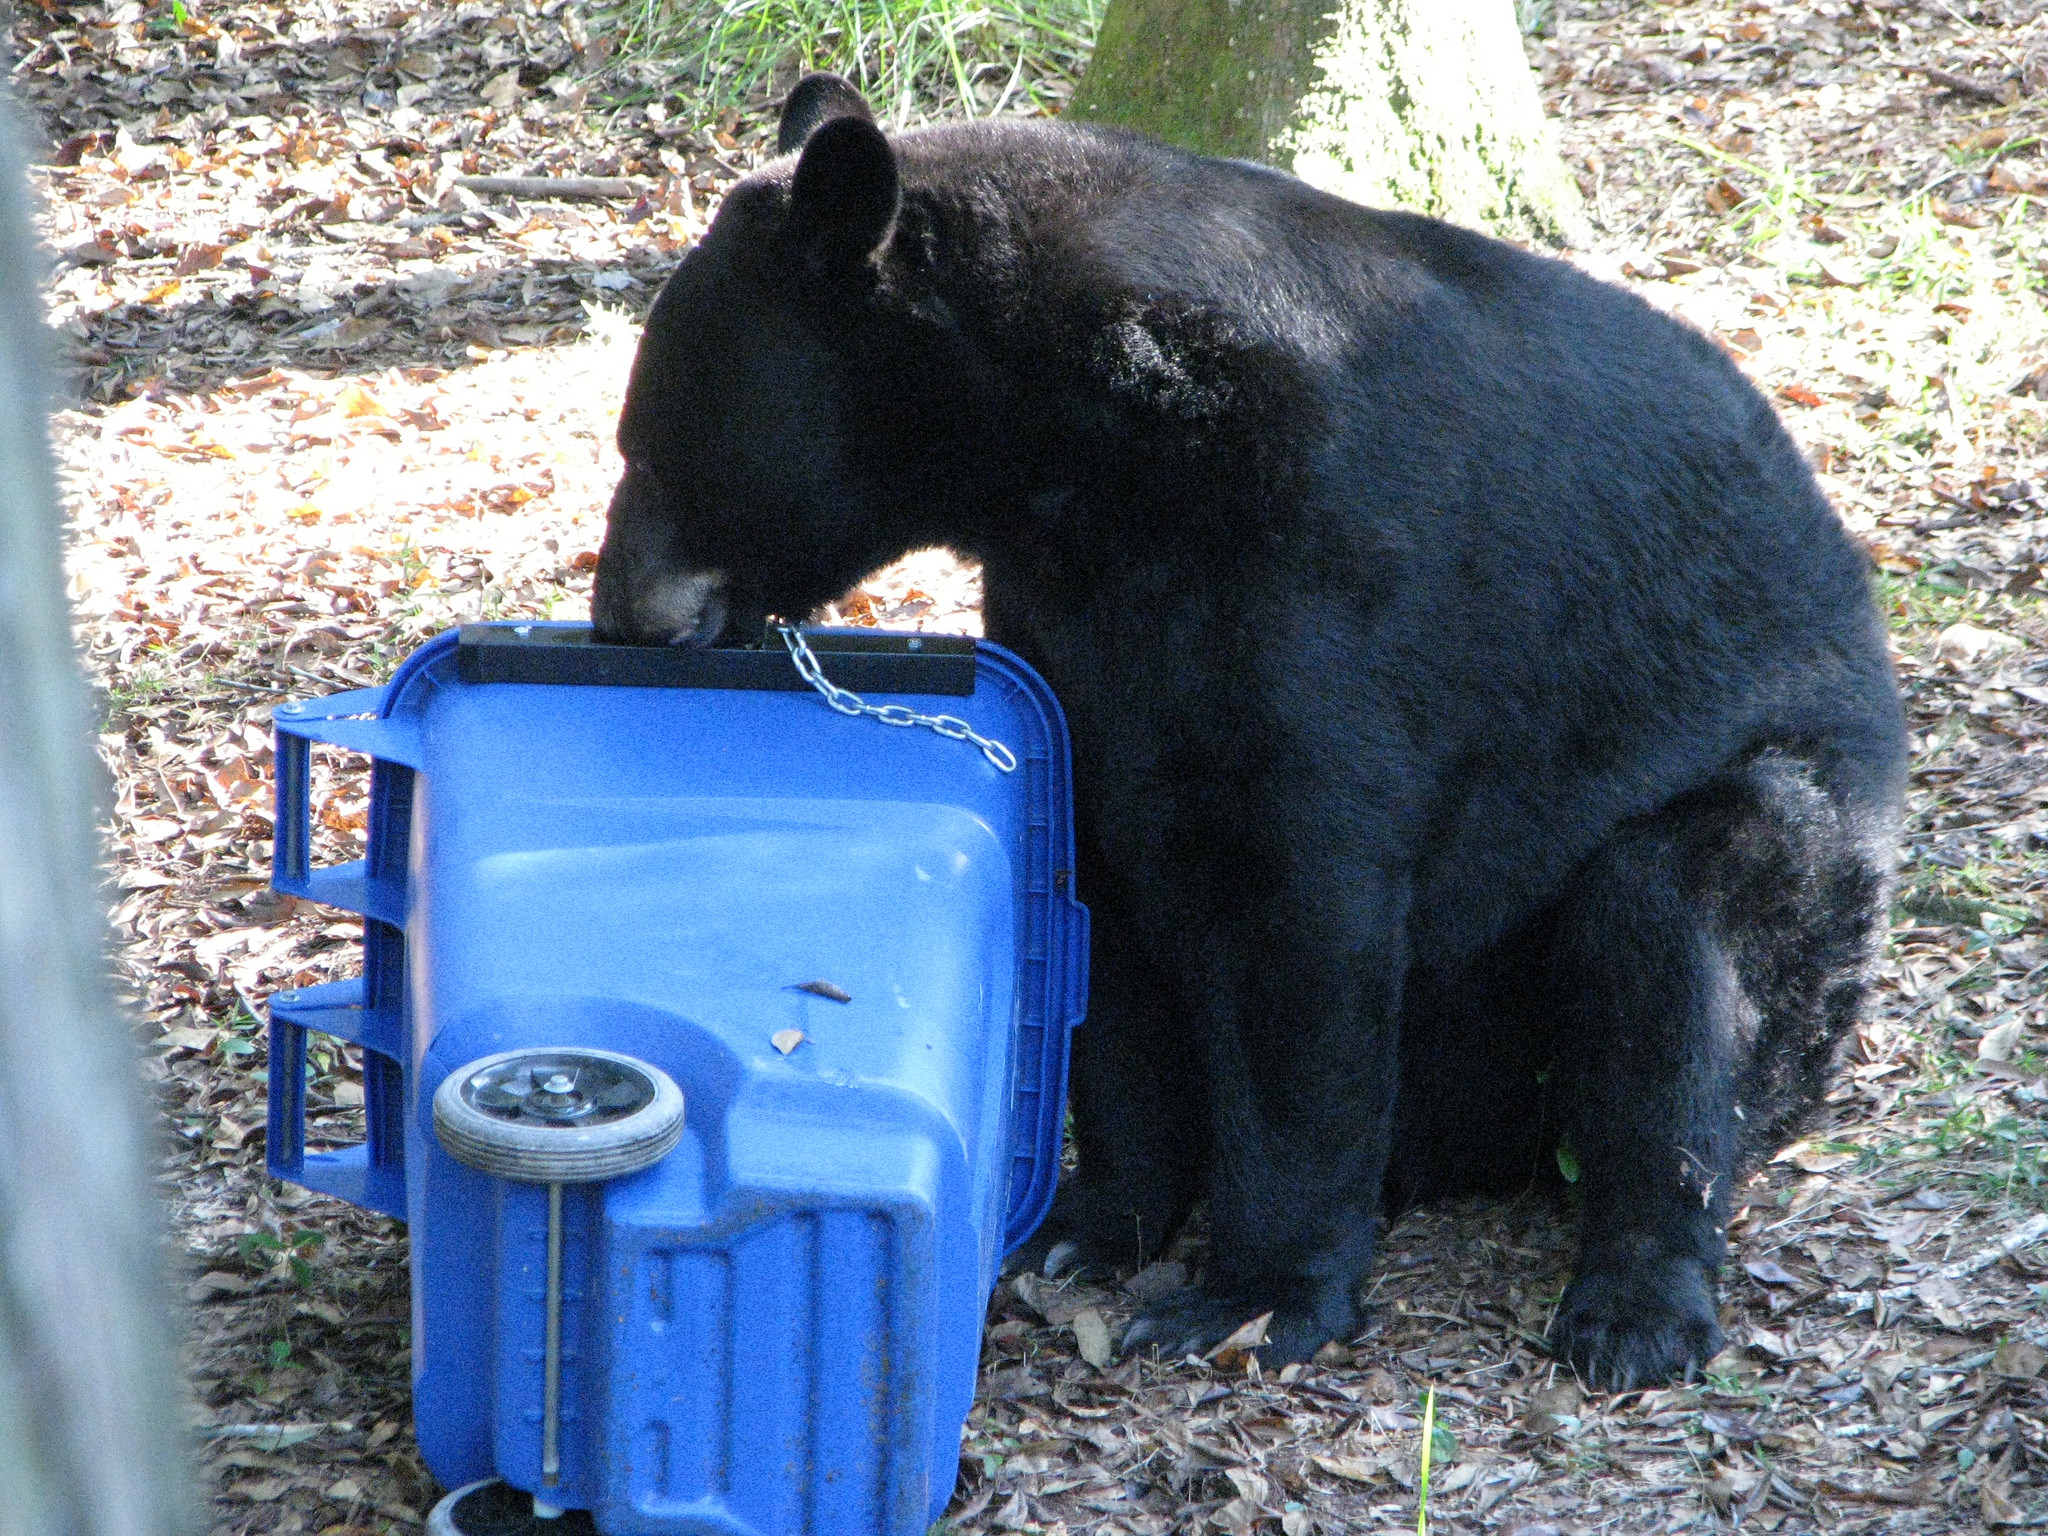 Black bears like this could be targets if a new hunting season is approved by Florida's FWC. They are expected to continue discussions at their April meeting in Tallahassee. Learn more  here...